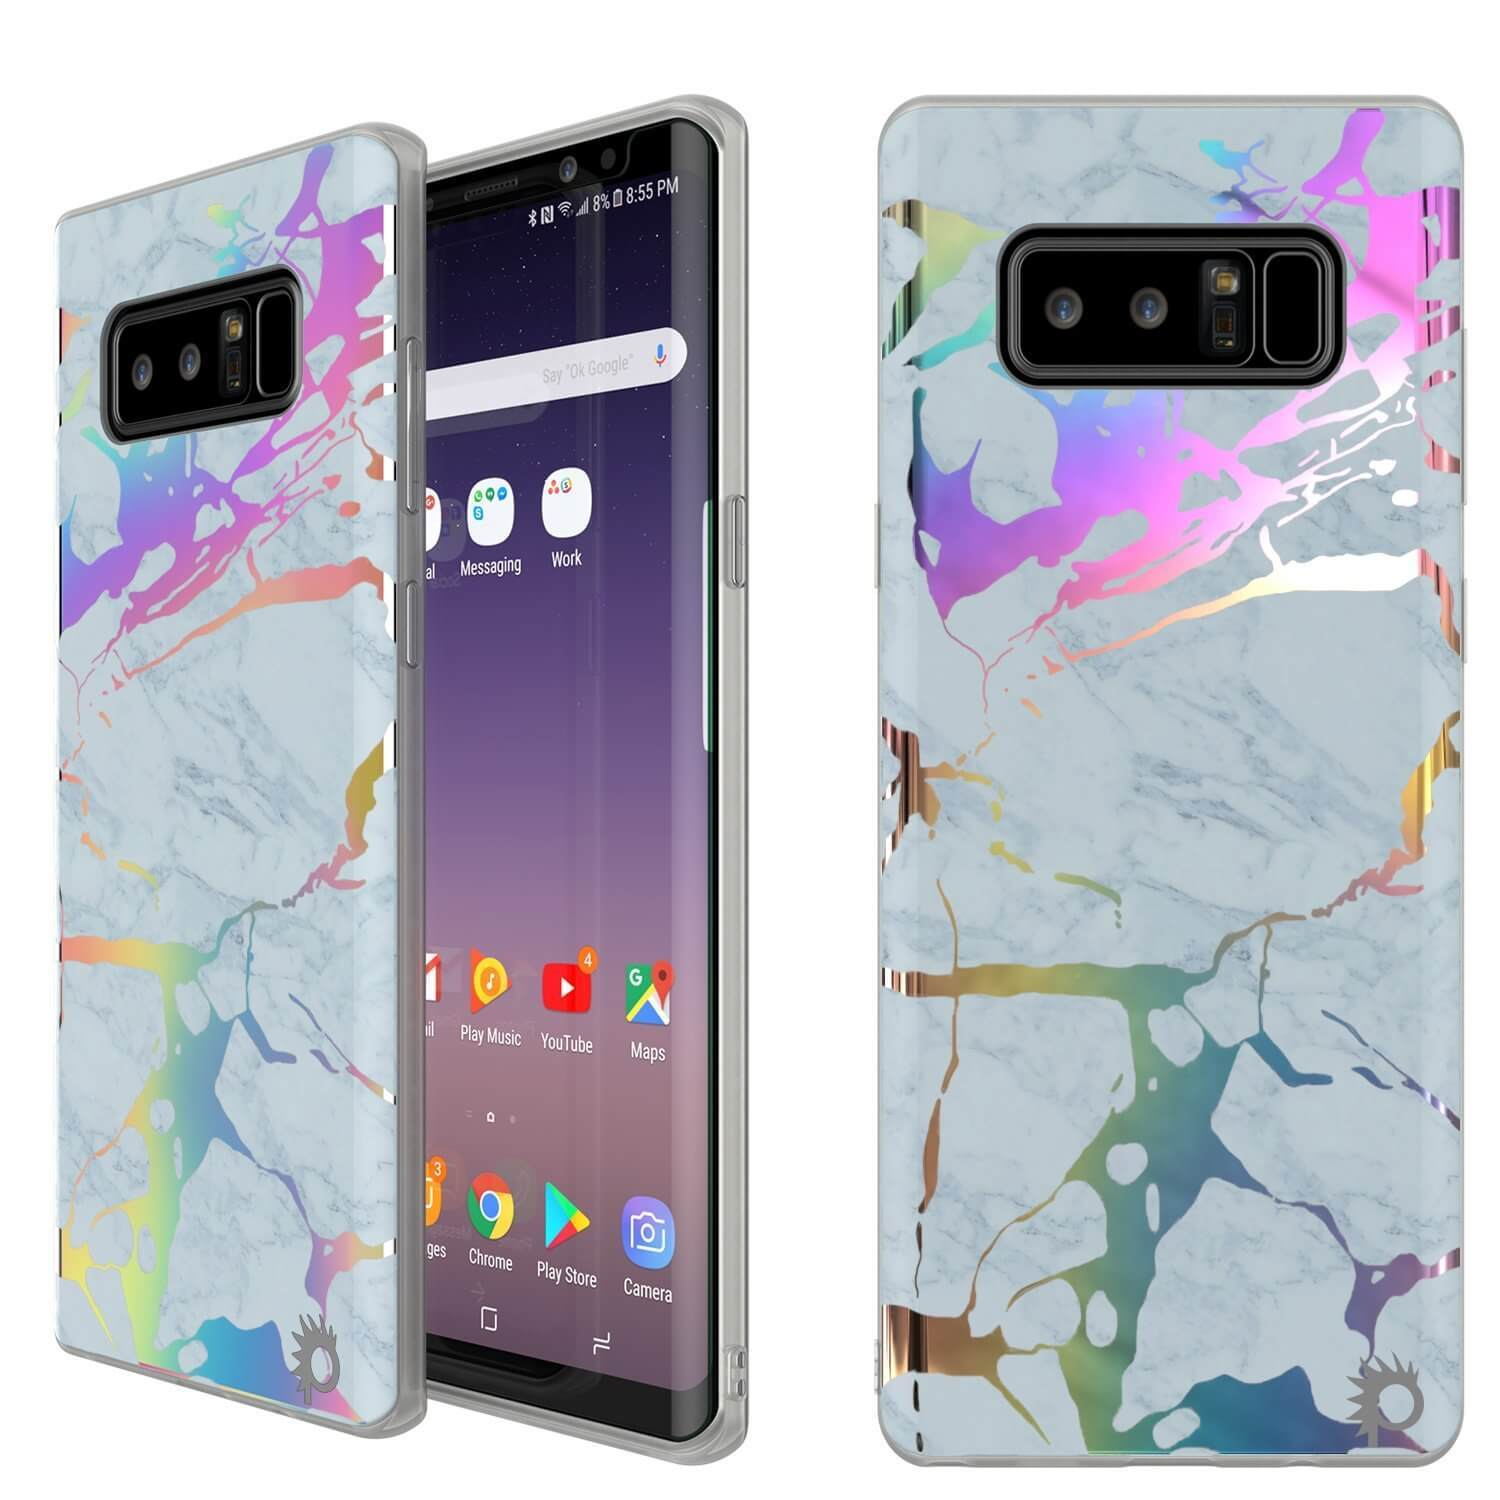 Punkcase Galaxy Note 8 Marble Case, Protective Full Body Cover W/PunkShield Screen Protector (Blue Marmo)